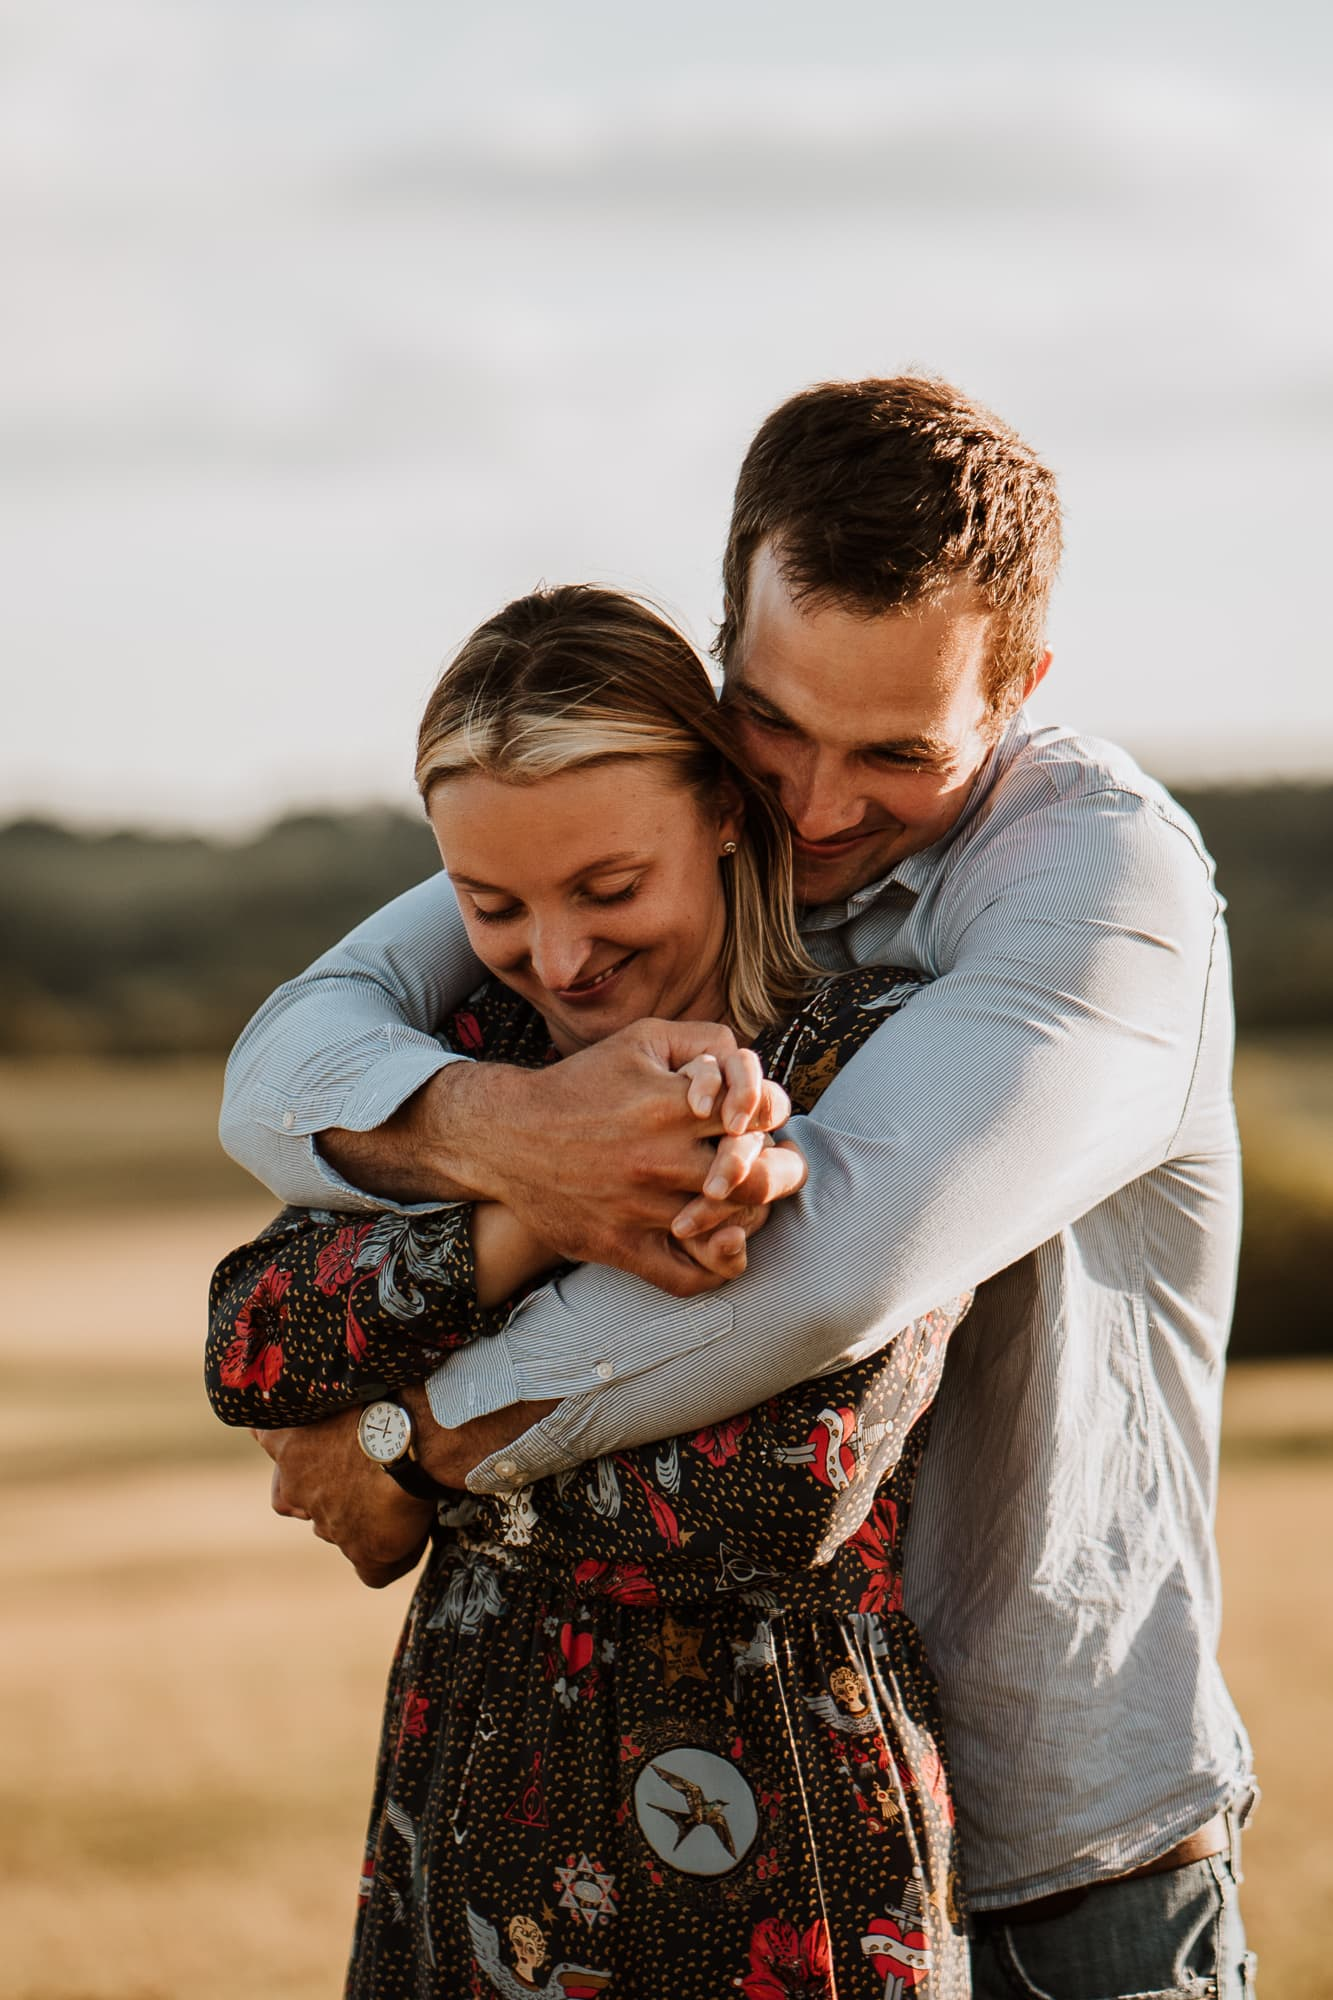 Couple with their arms wrapped around each other during their engagement photography session